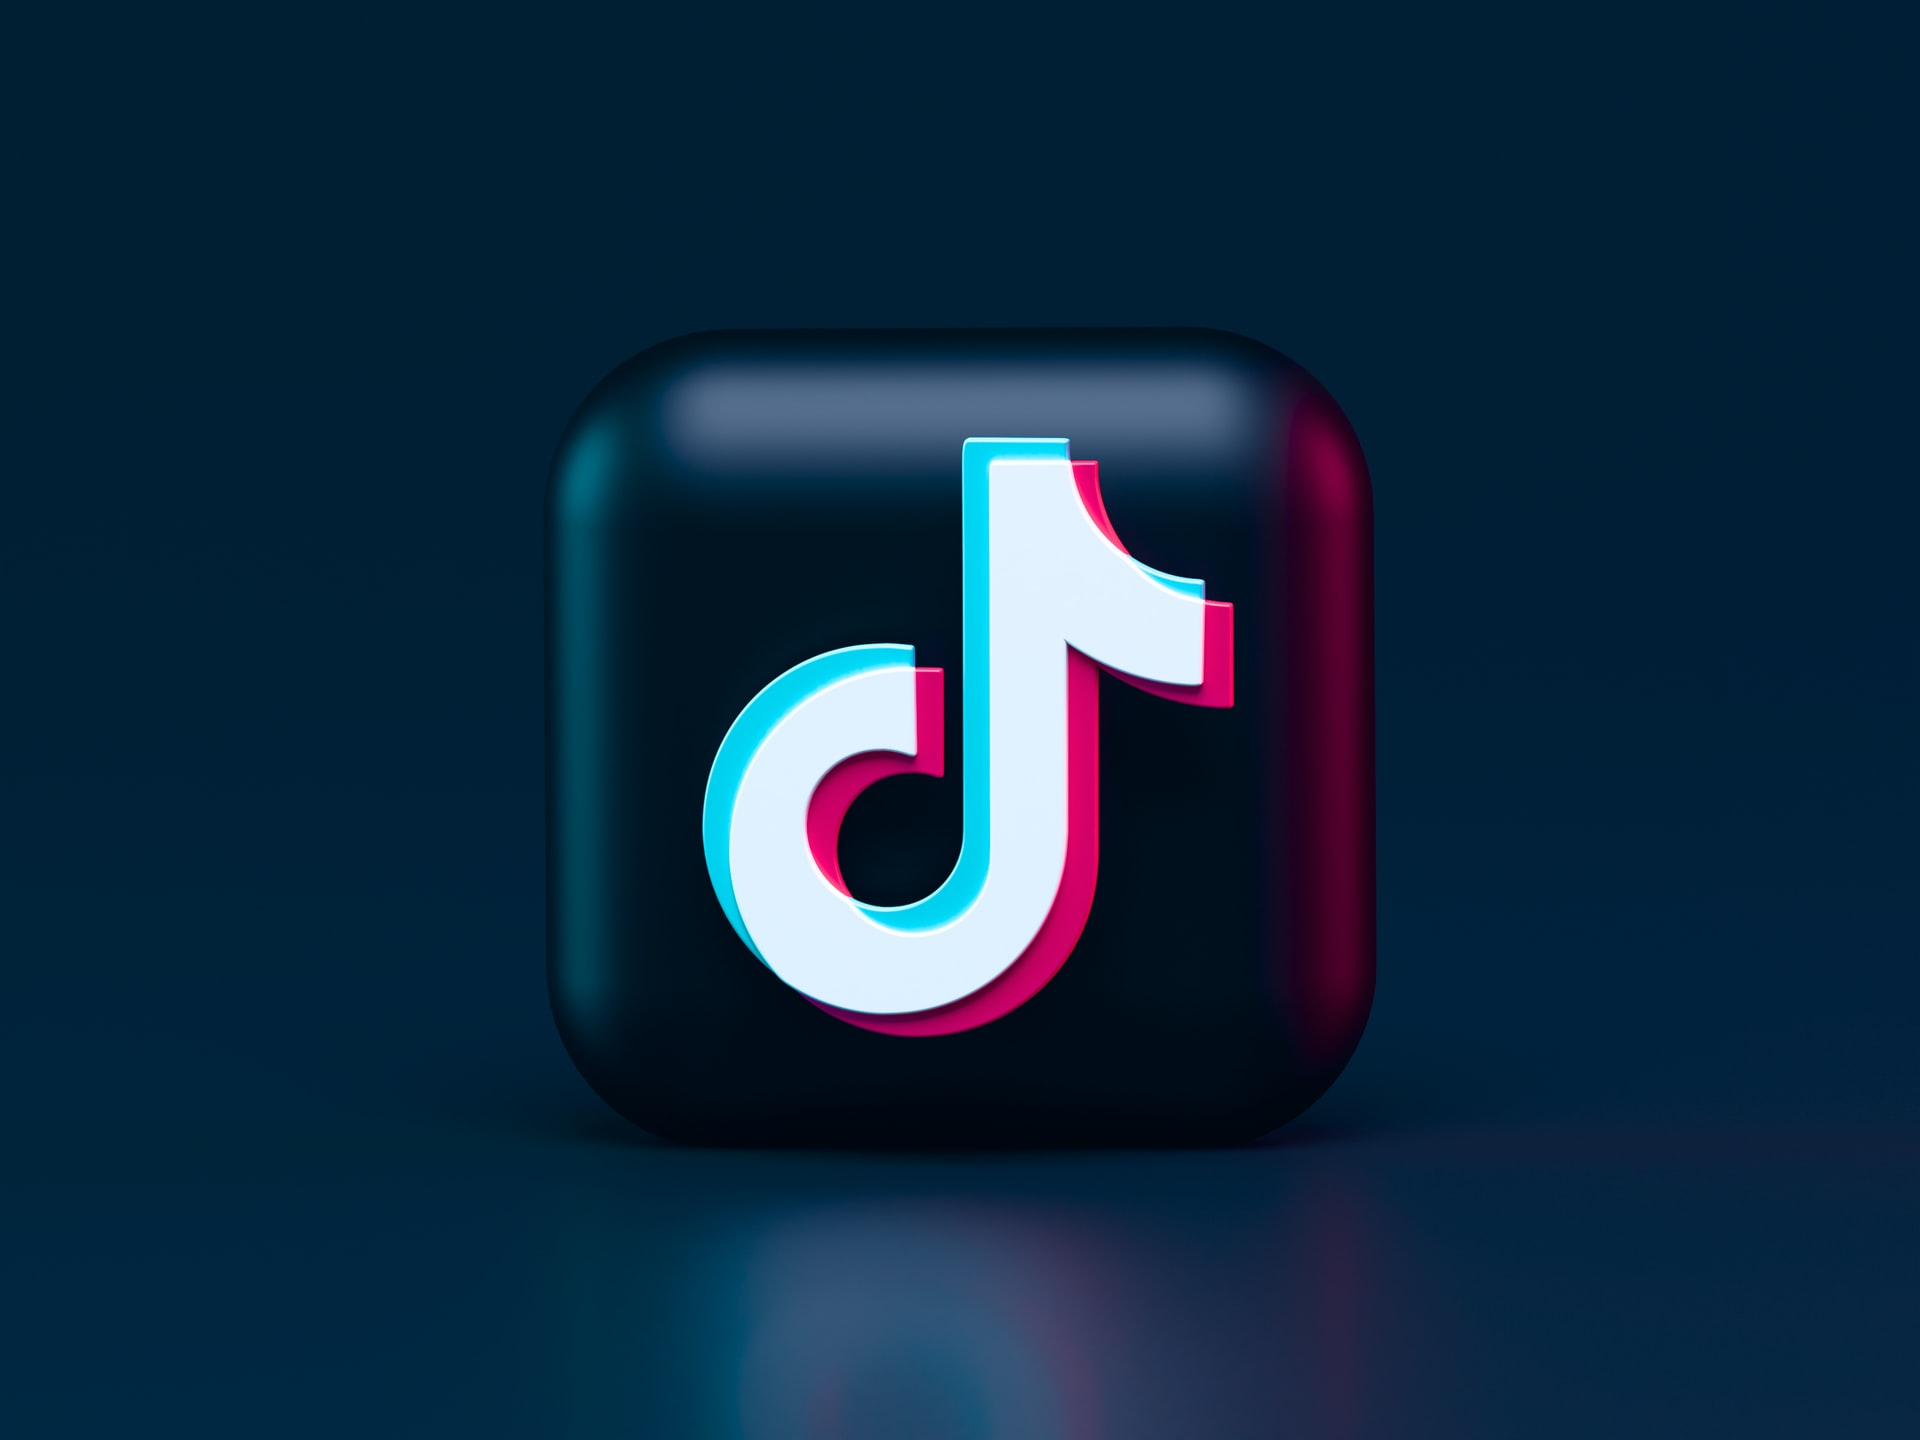 TikTok 3d Icon Concept. Dark Mode Style 🖤 Made the 3d icon of video-sharing social networking service owned by ByteDance.